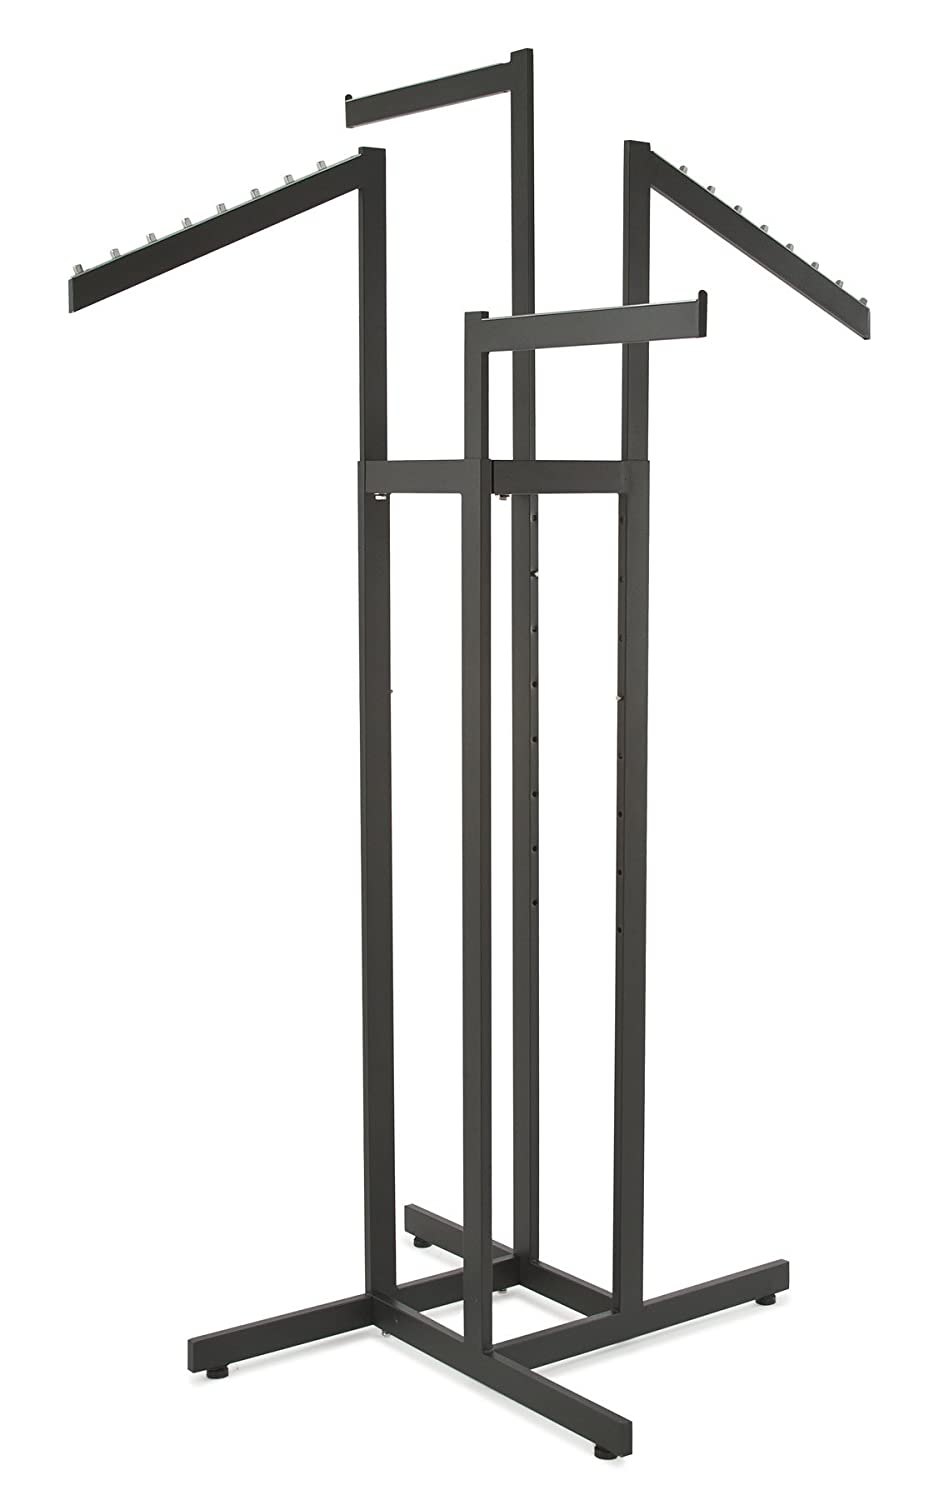 Clothing Rack 4 Way Slant Arms Black Clothes Adjustable Height Slanted Retail